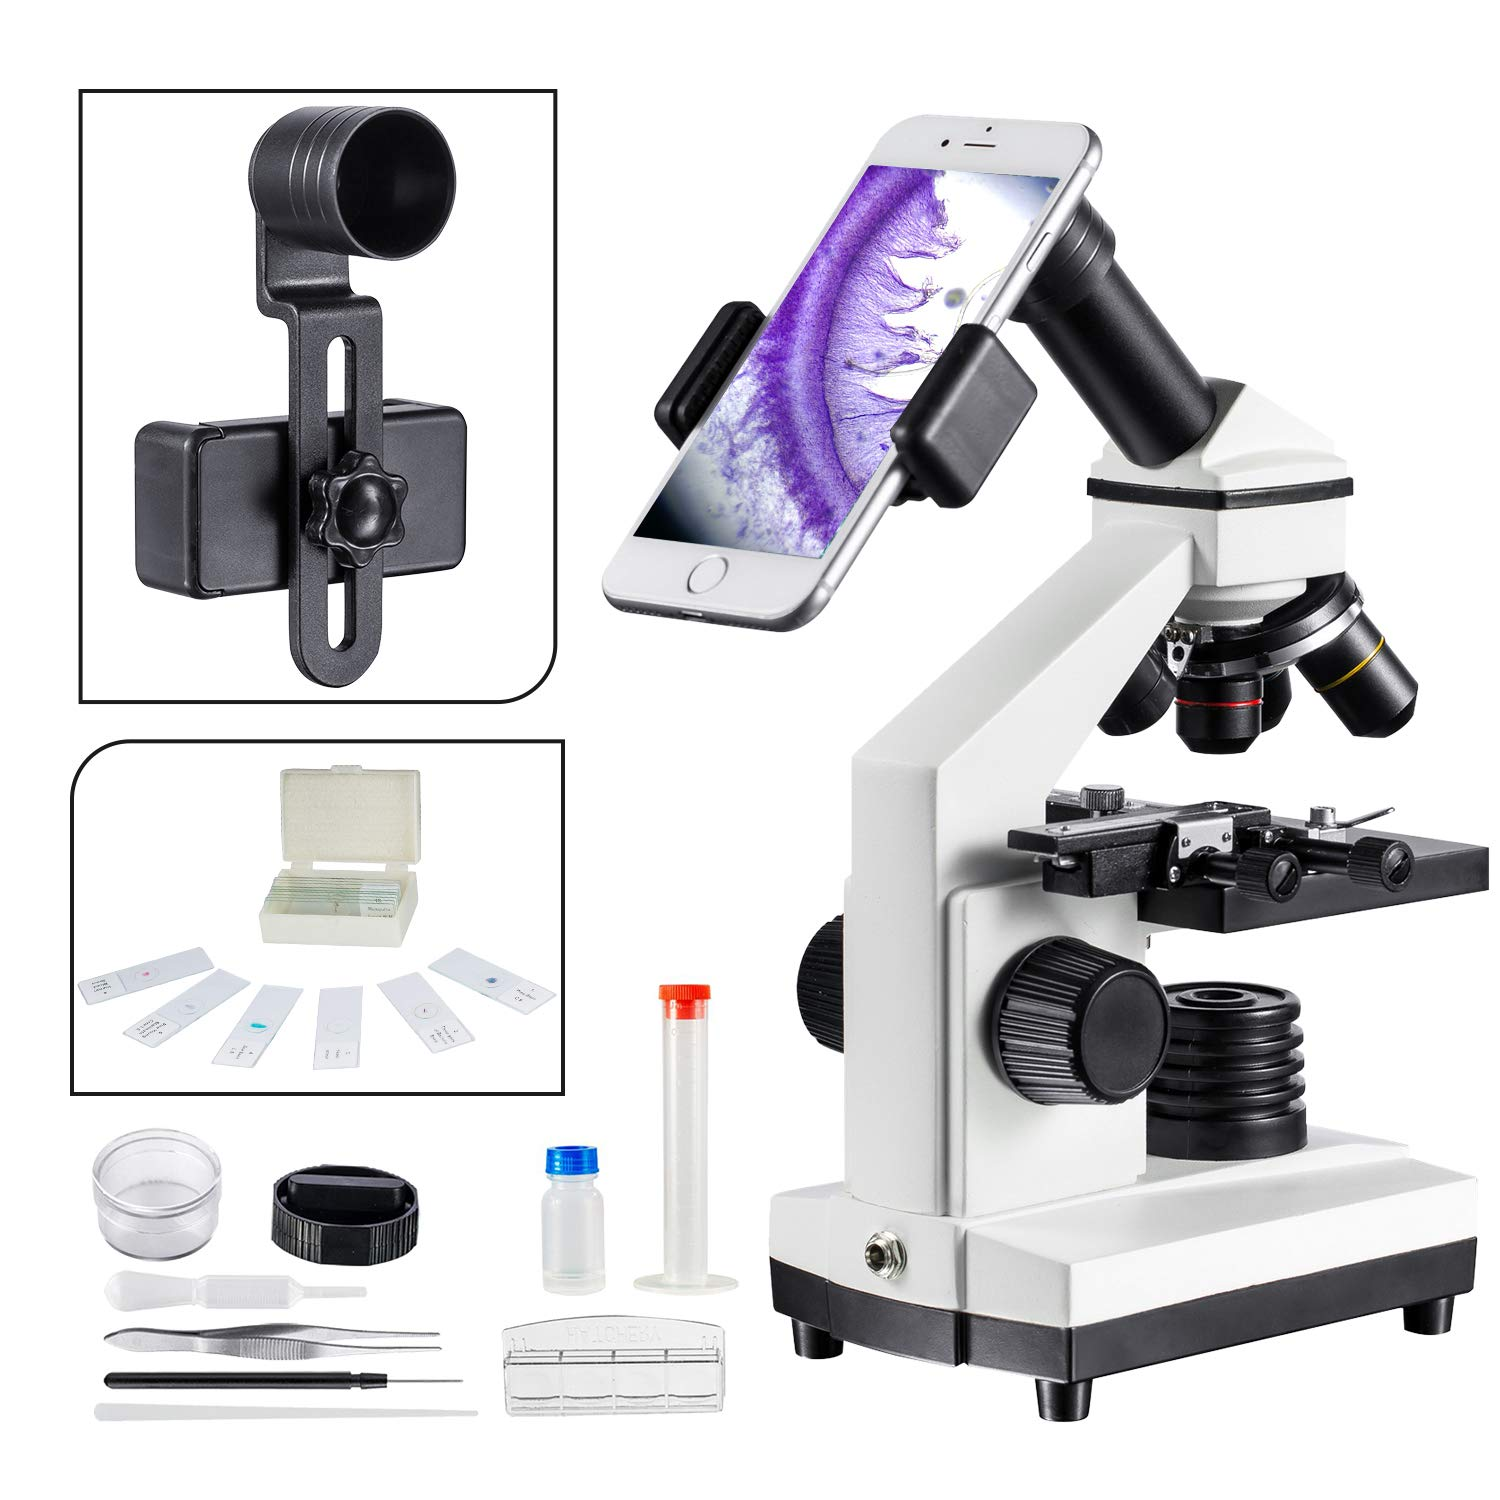 1000x Compound Microscope for Students with Prepared Slides Kit Suitable for School Teaching, Biological Research and Homeschool Learning Nature MAXLAPTER